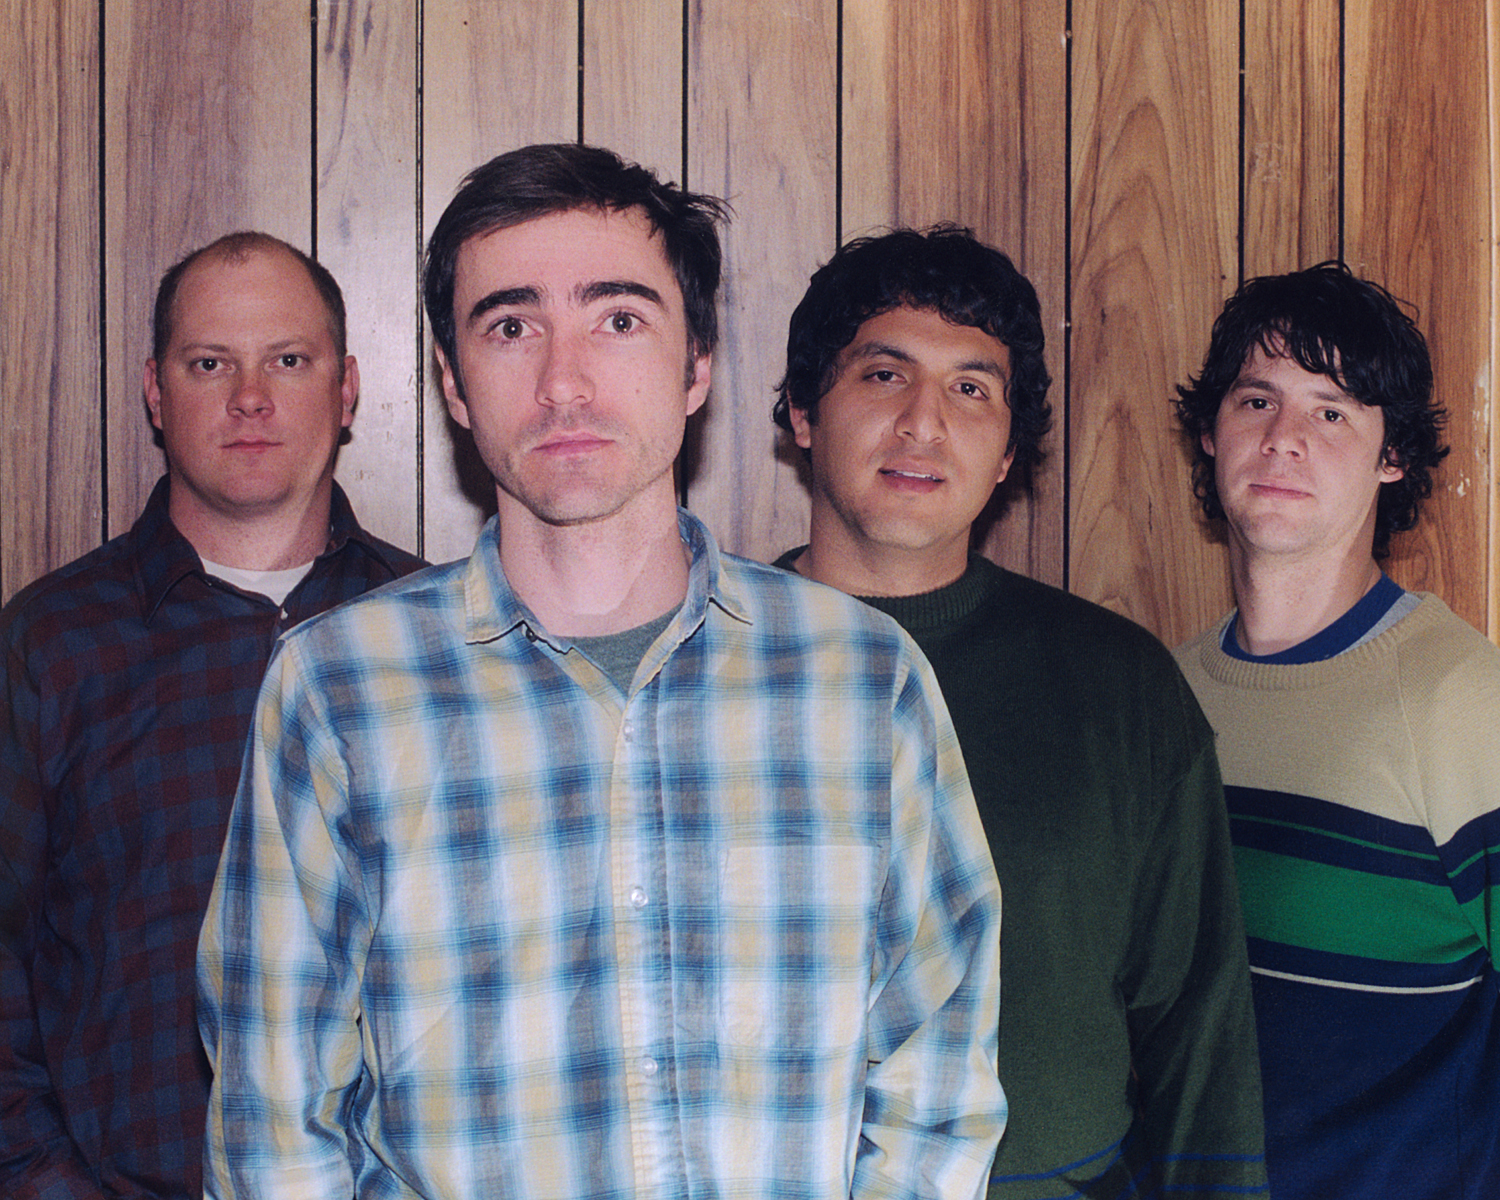 Die Band The Shins